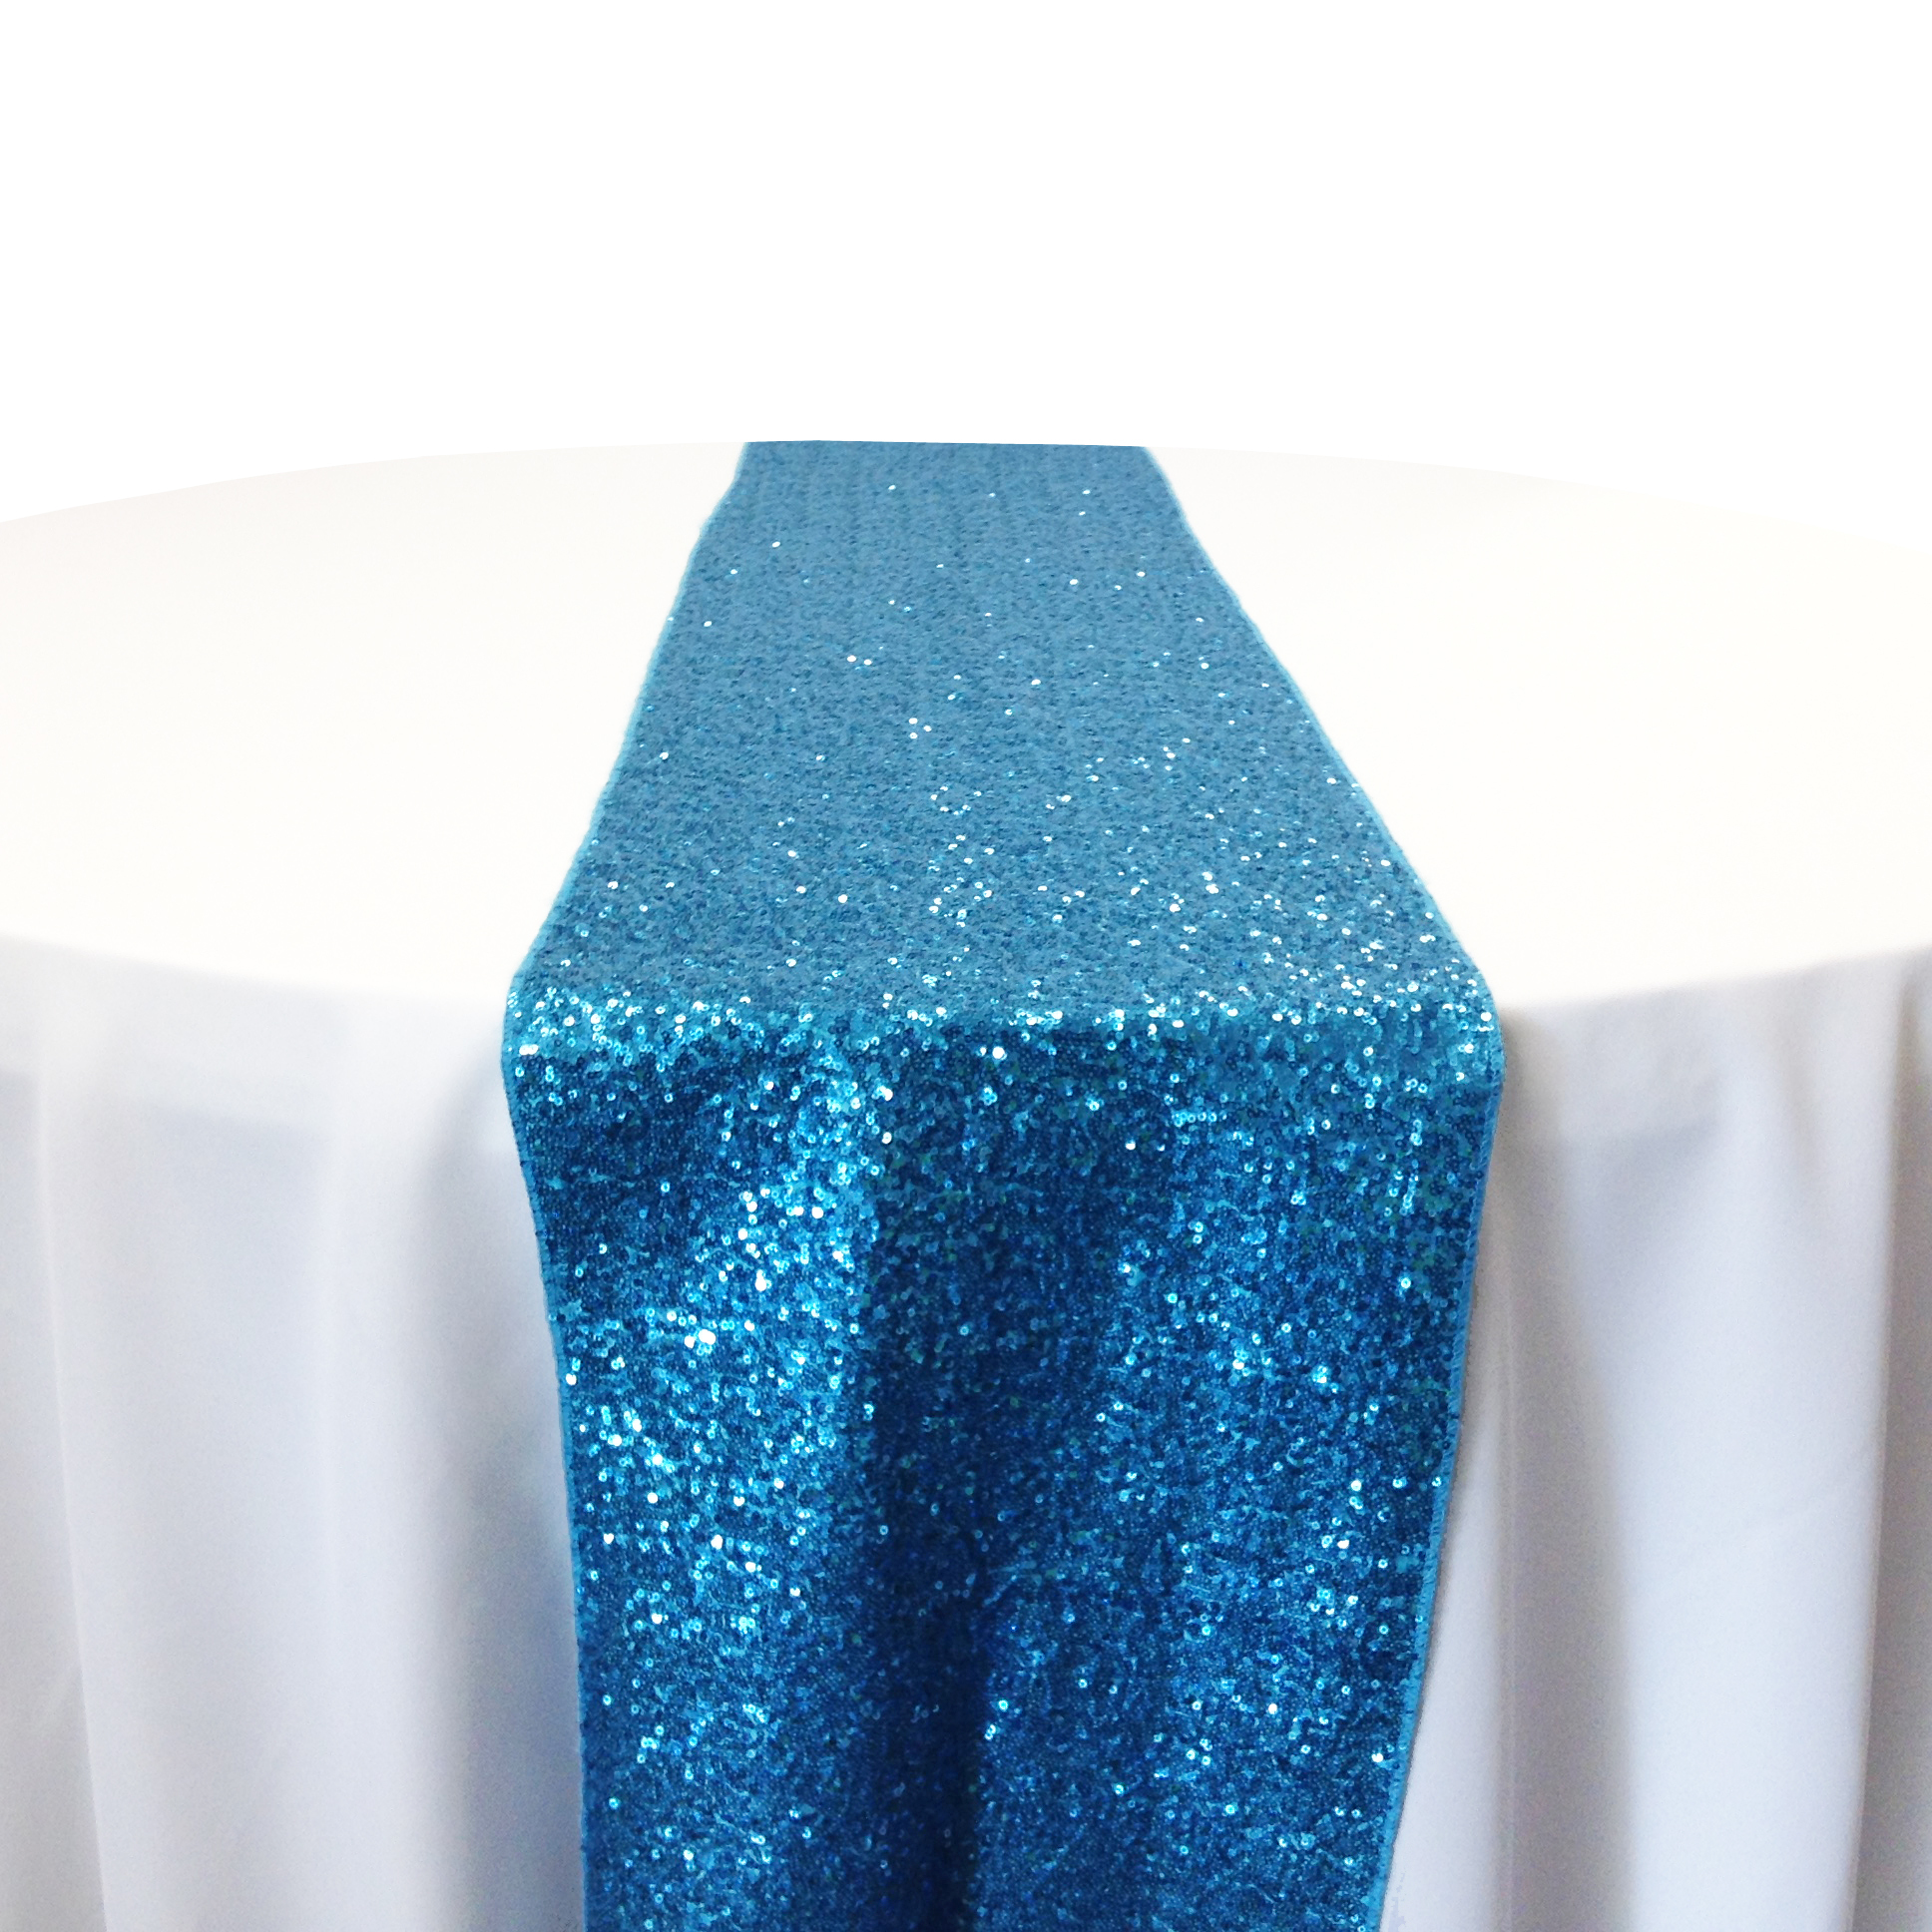 Aqua Taffeta Sequin Table Runner Rental Aqua Taffeta Glitz Table Runner Rental